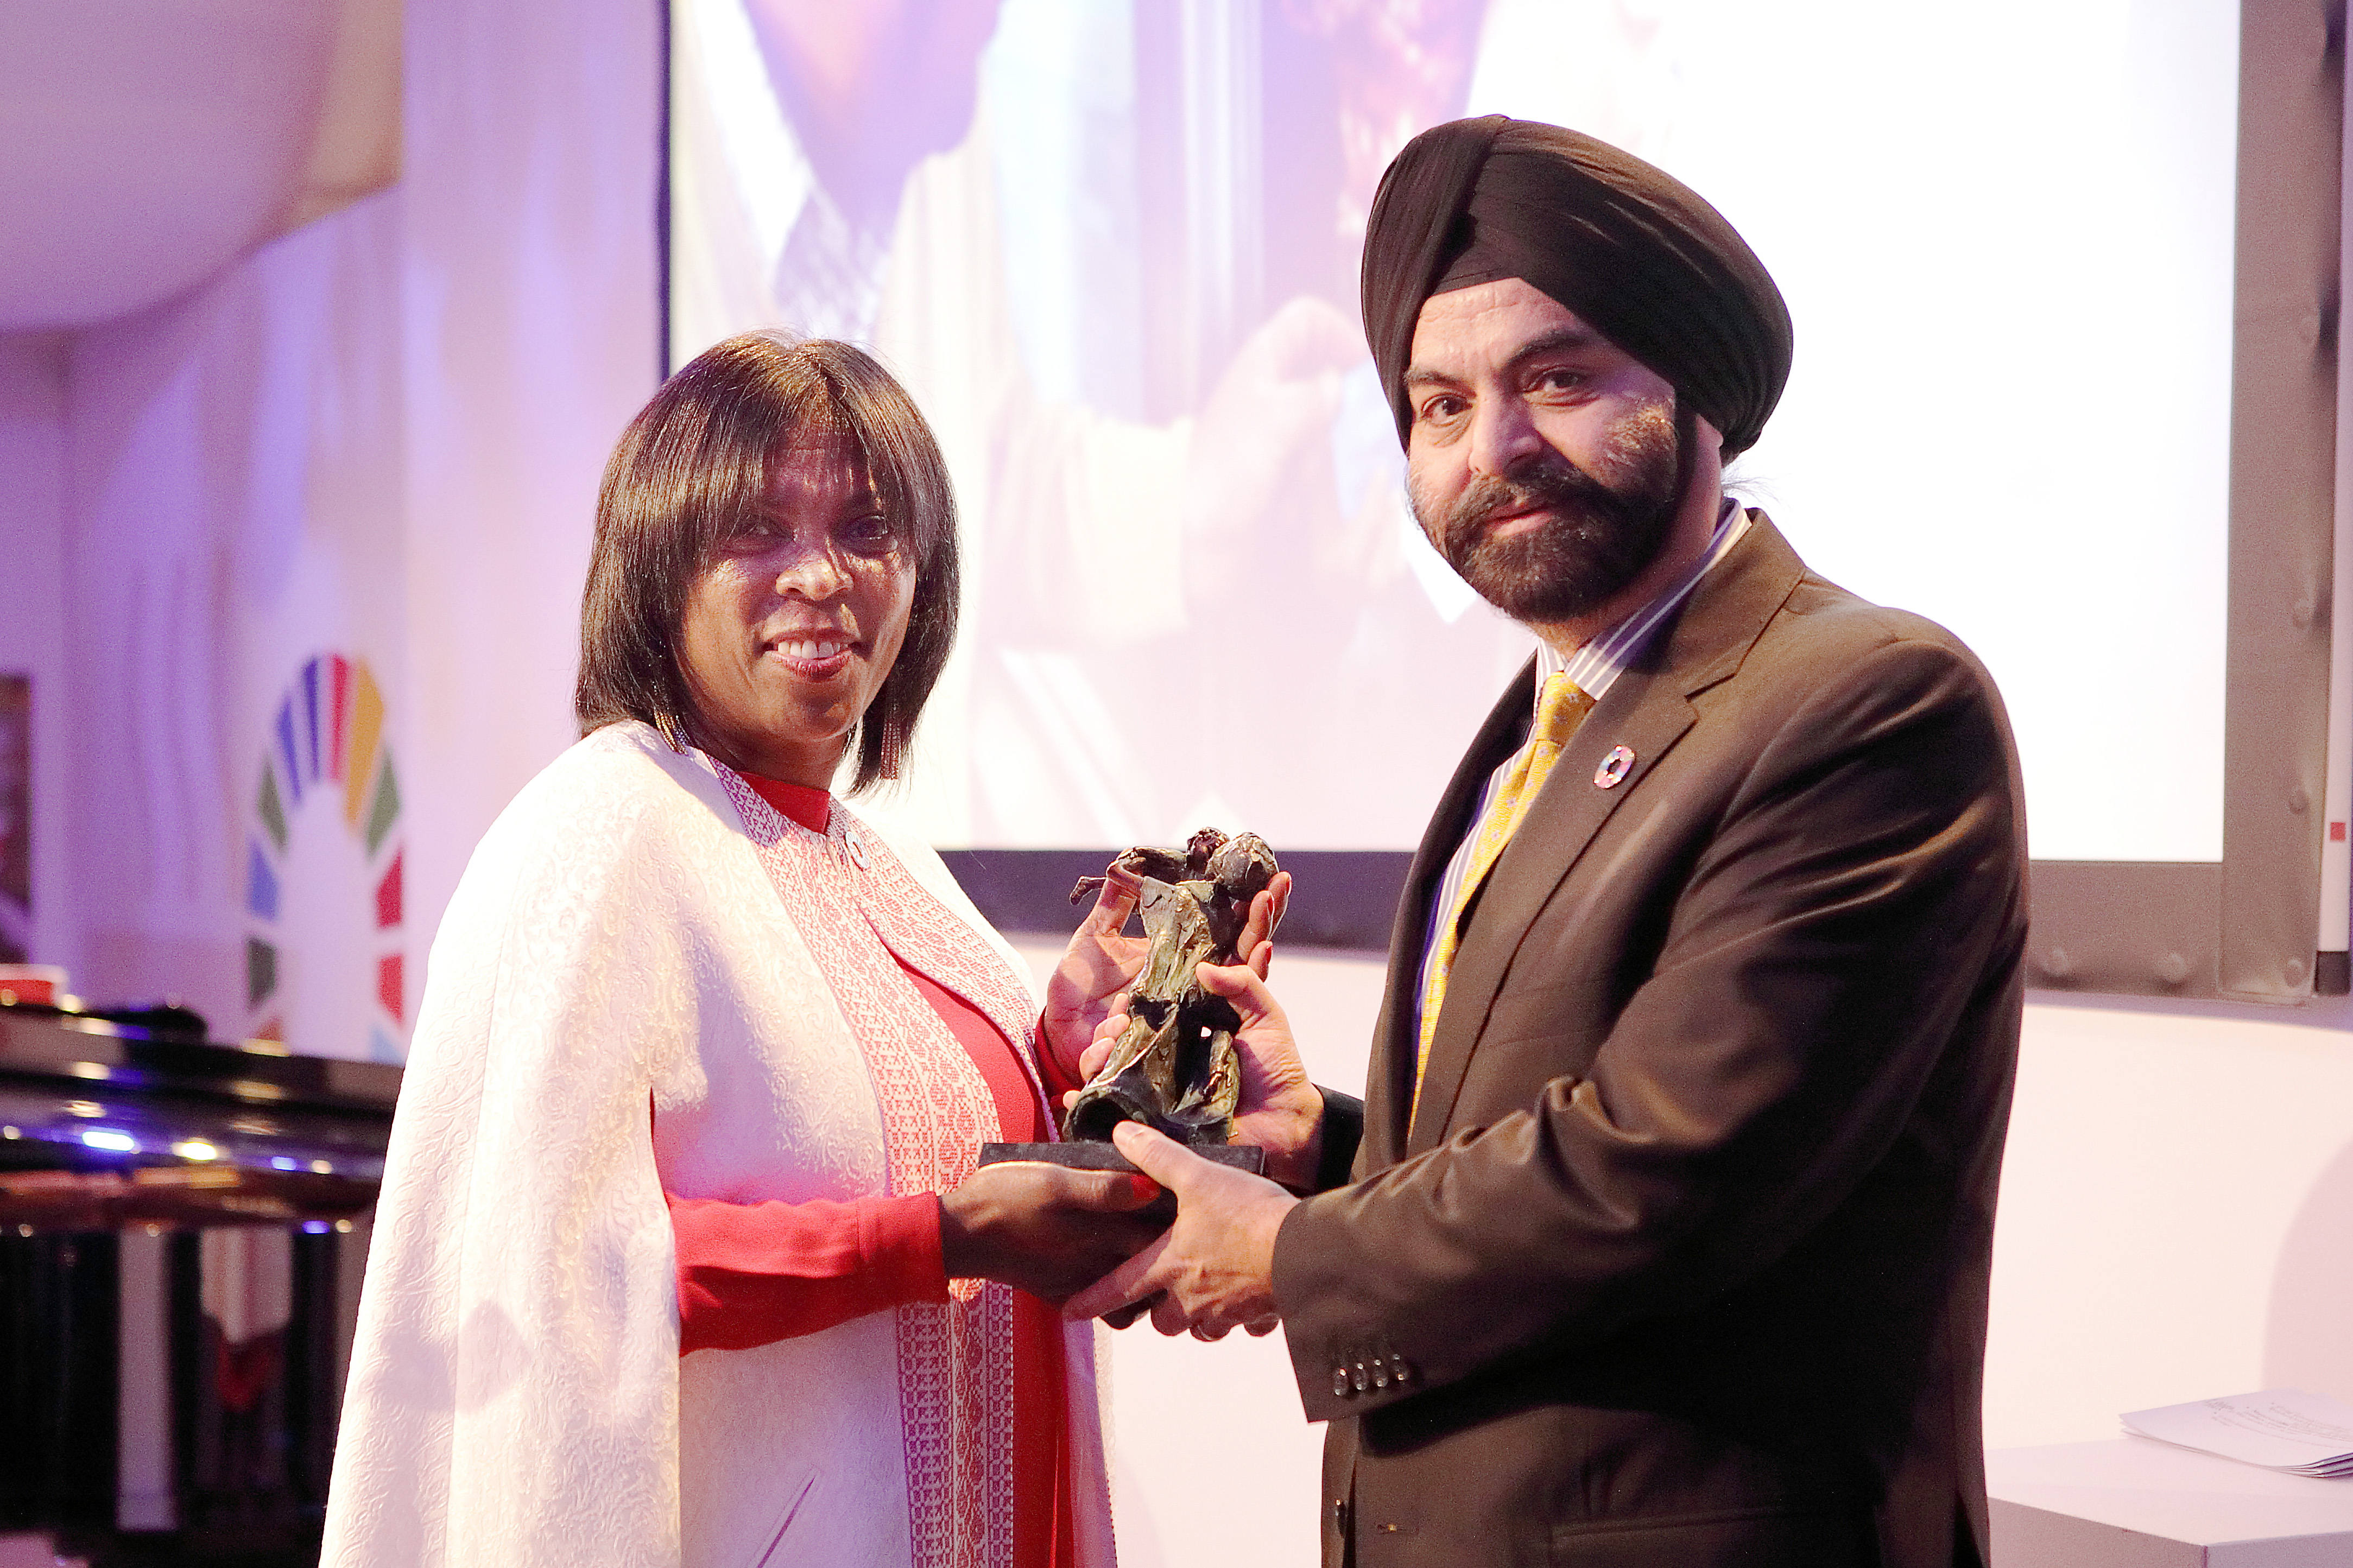 Ertharin-Cousin-WFP-Executive-Director-and-Ajay-Banga-Mastercard-President-and-CEO